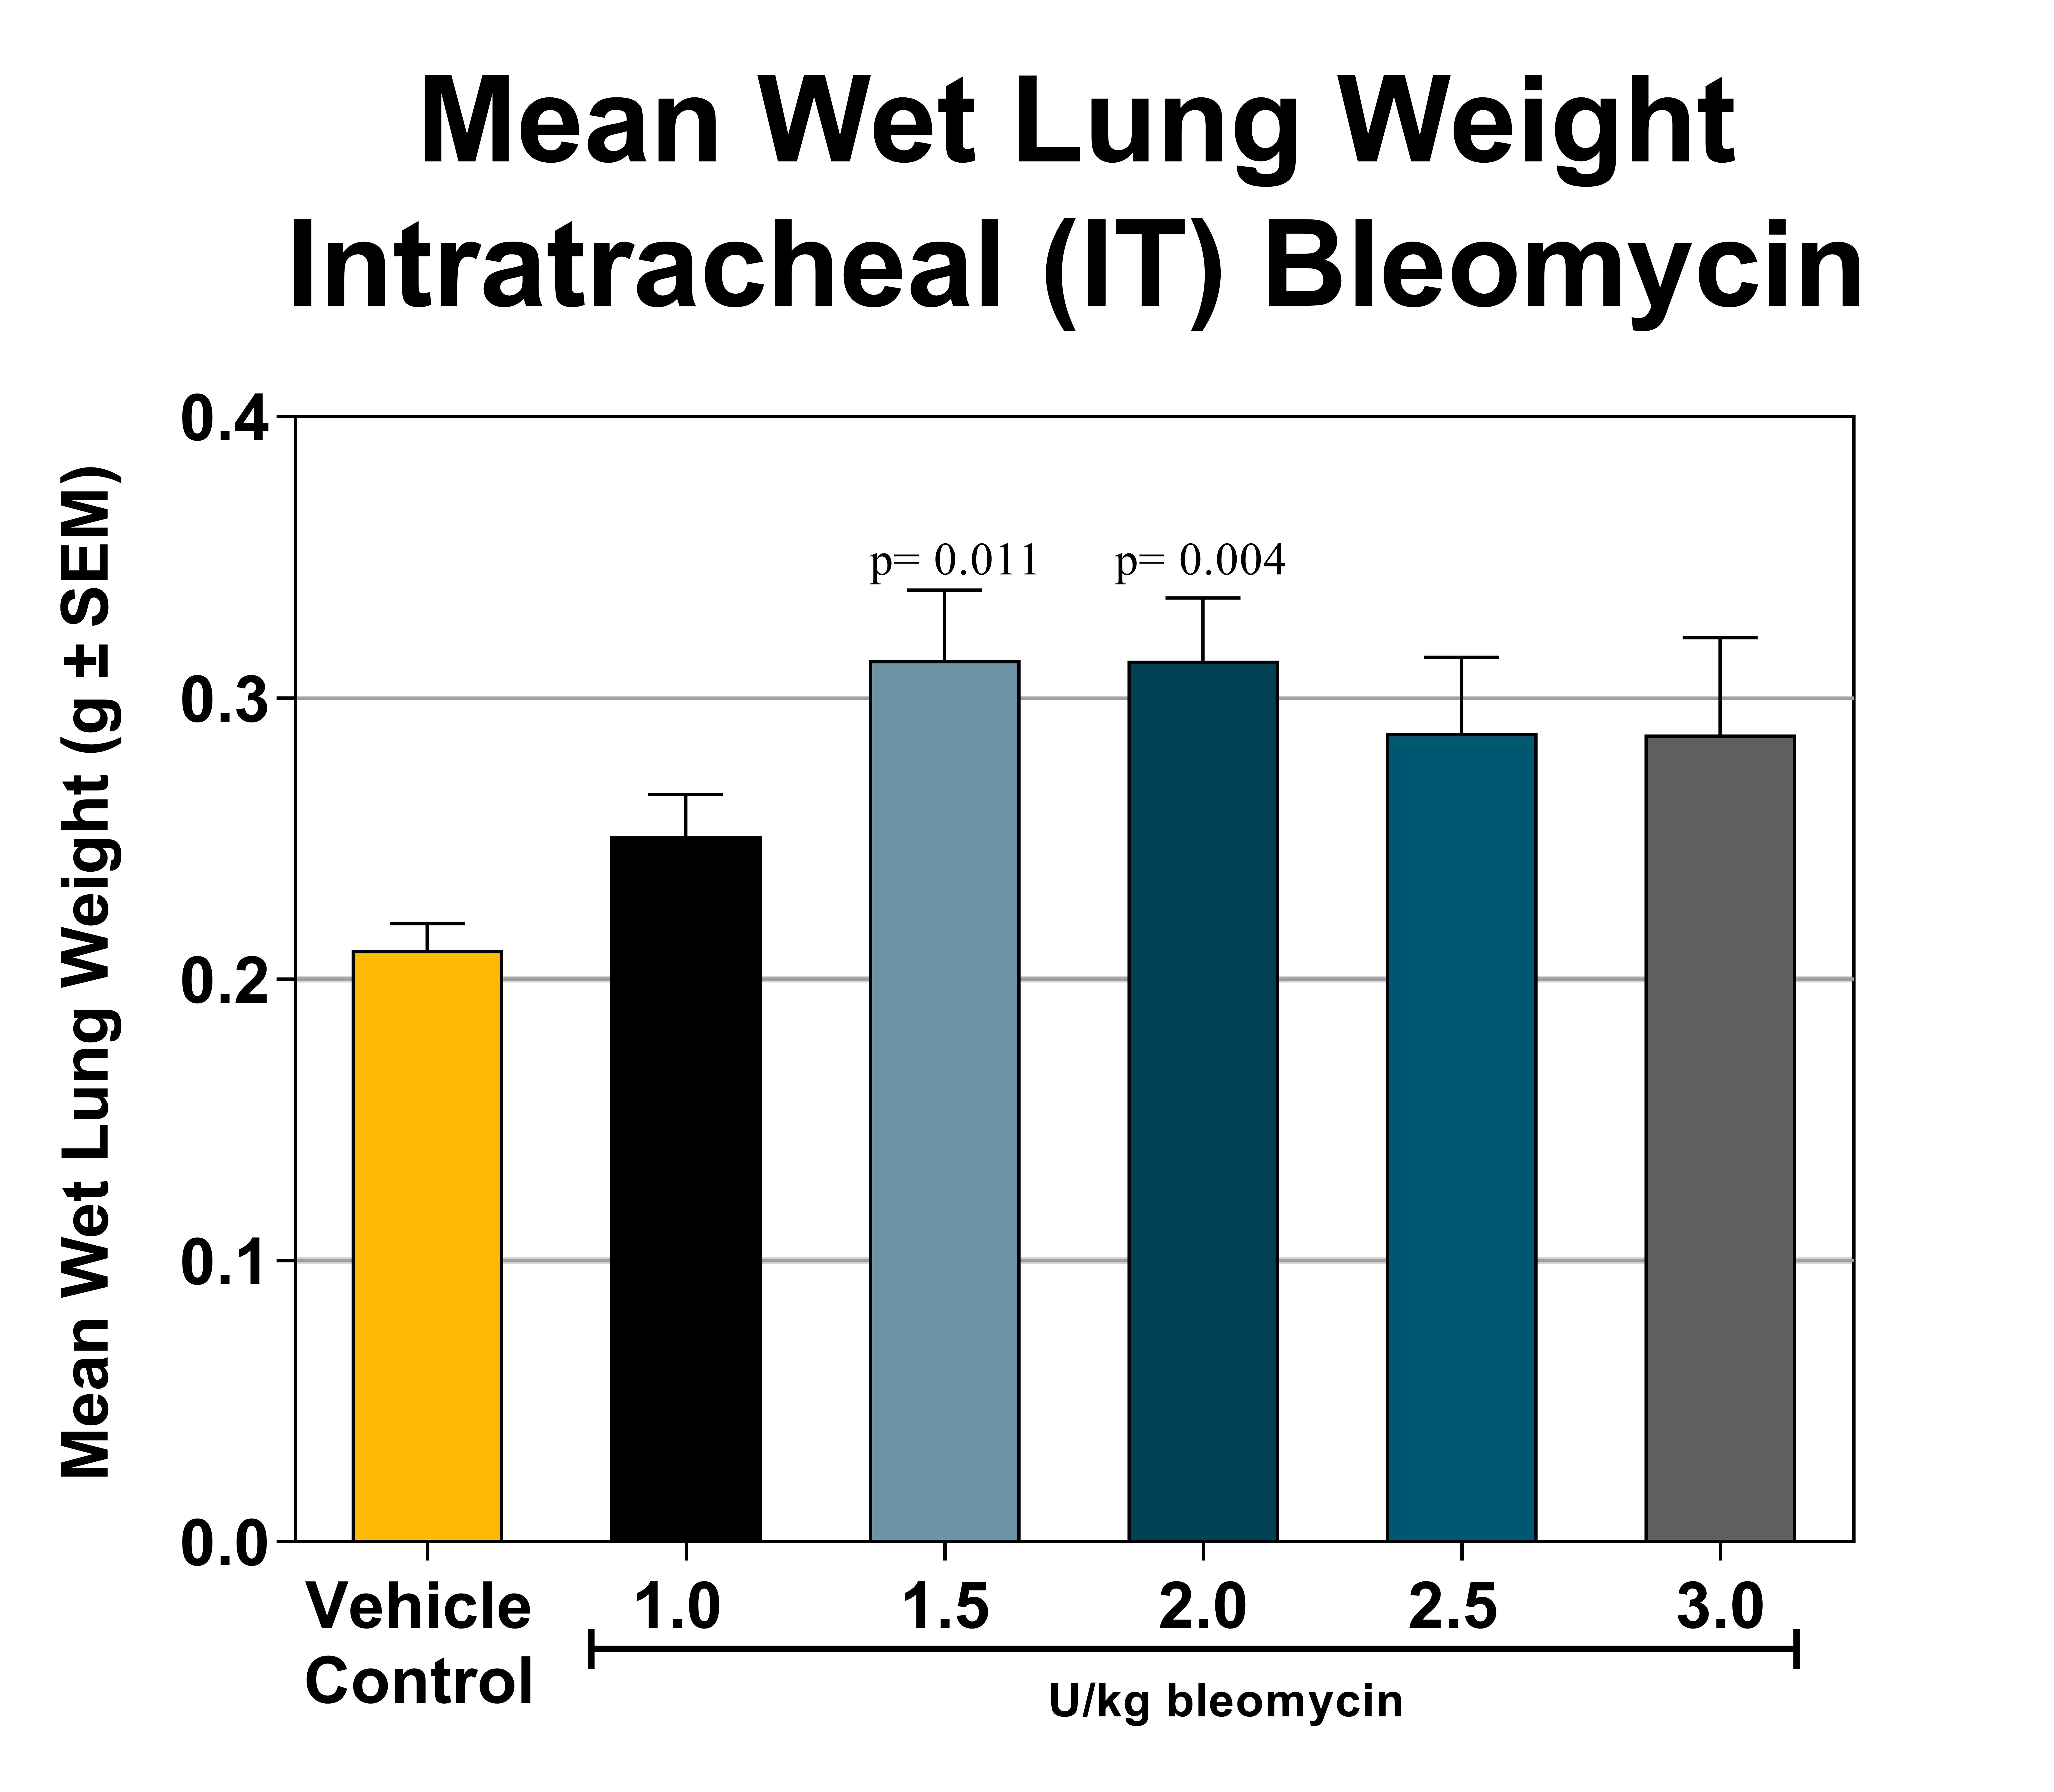 Wet lung weight resulting from intratracheal bleomycin exposure